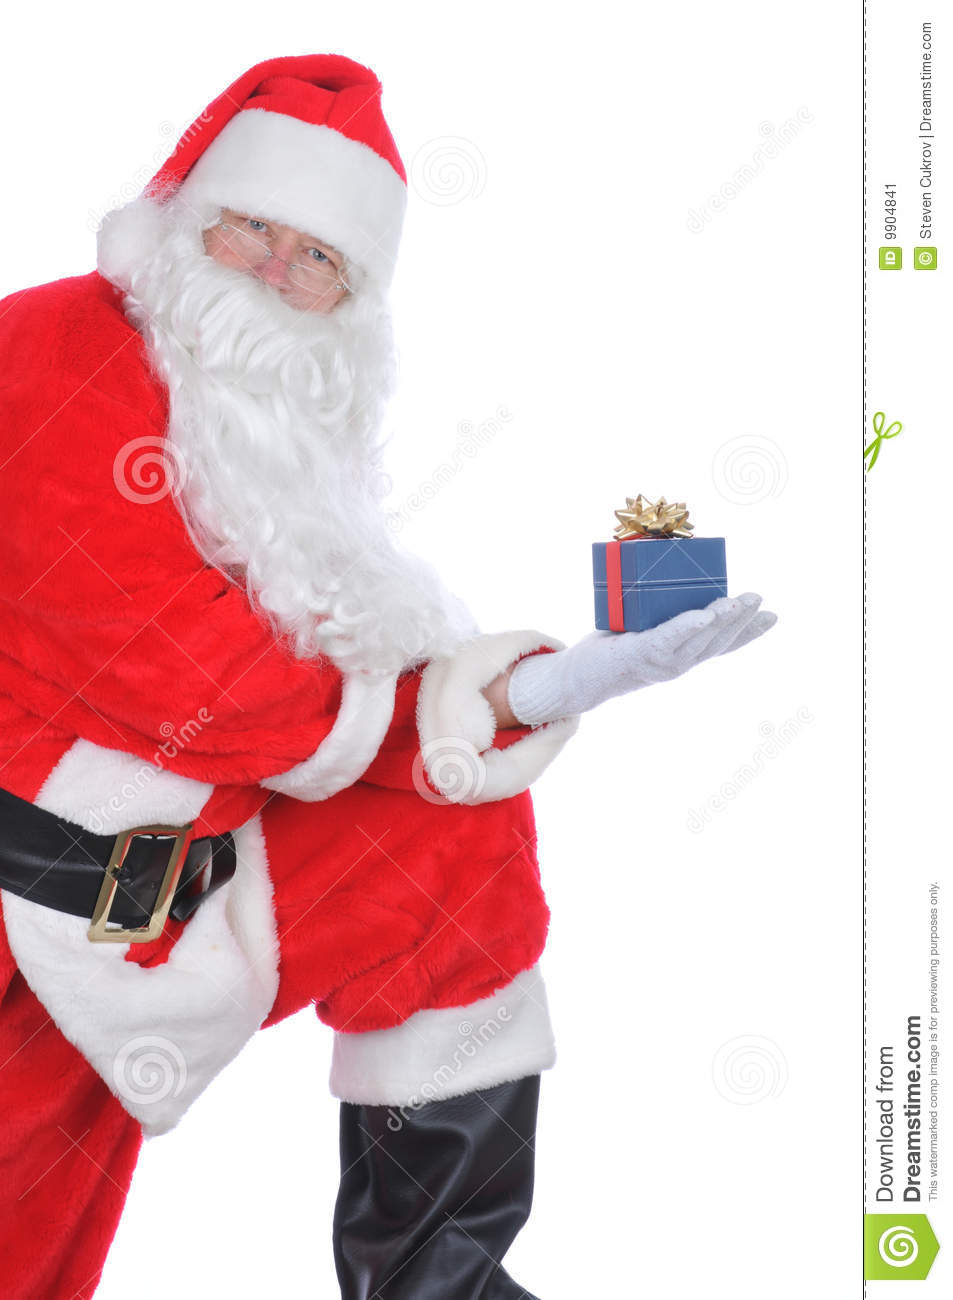 Santa Claus Holding A Present Stock Image Image 9904841